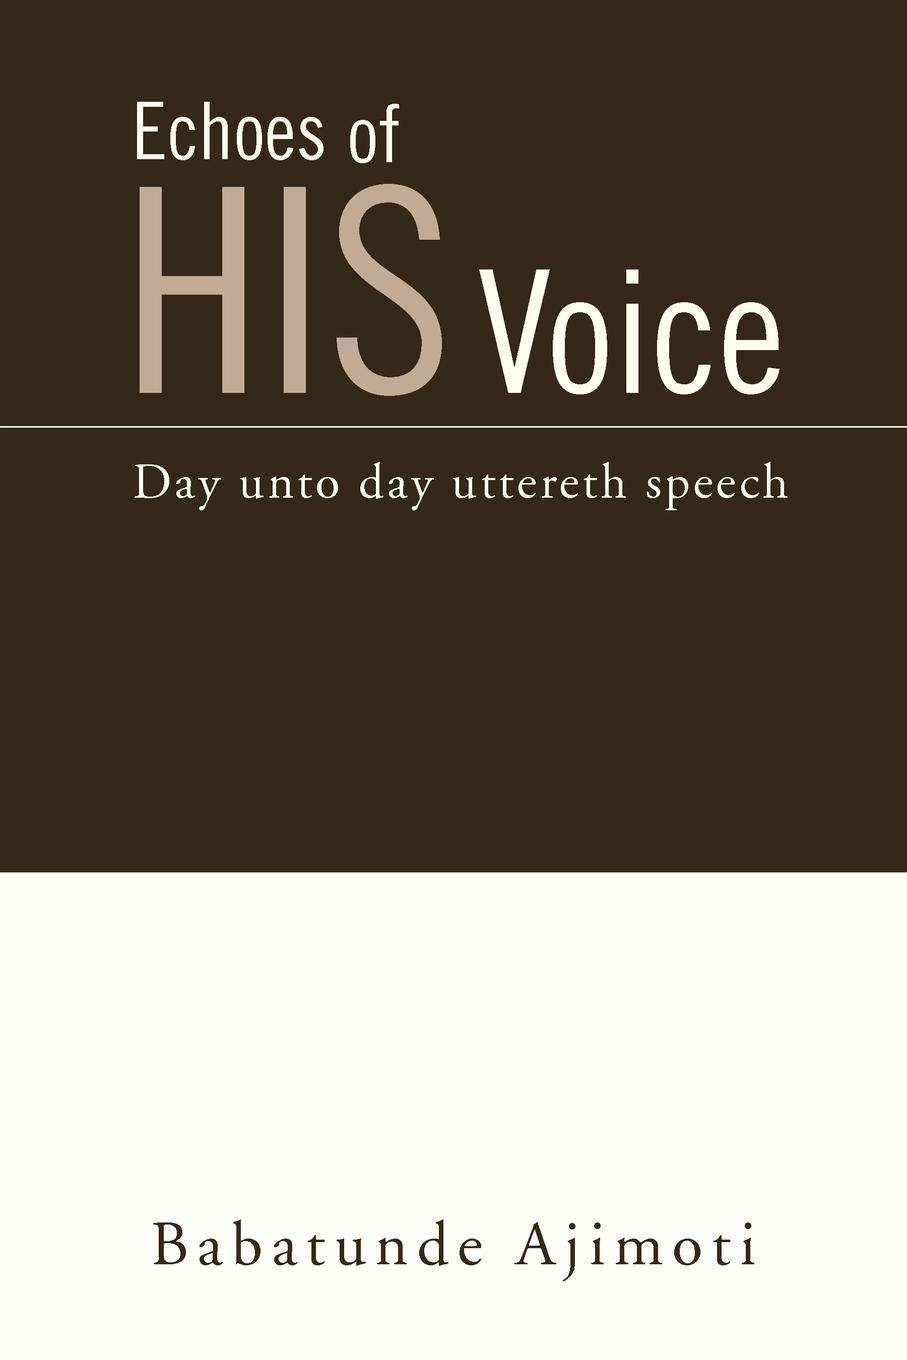 Babatunde Ajimoti Echoes of His Voice. Day unto day uttereth speech